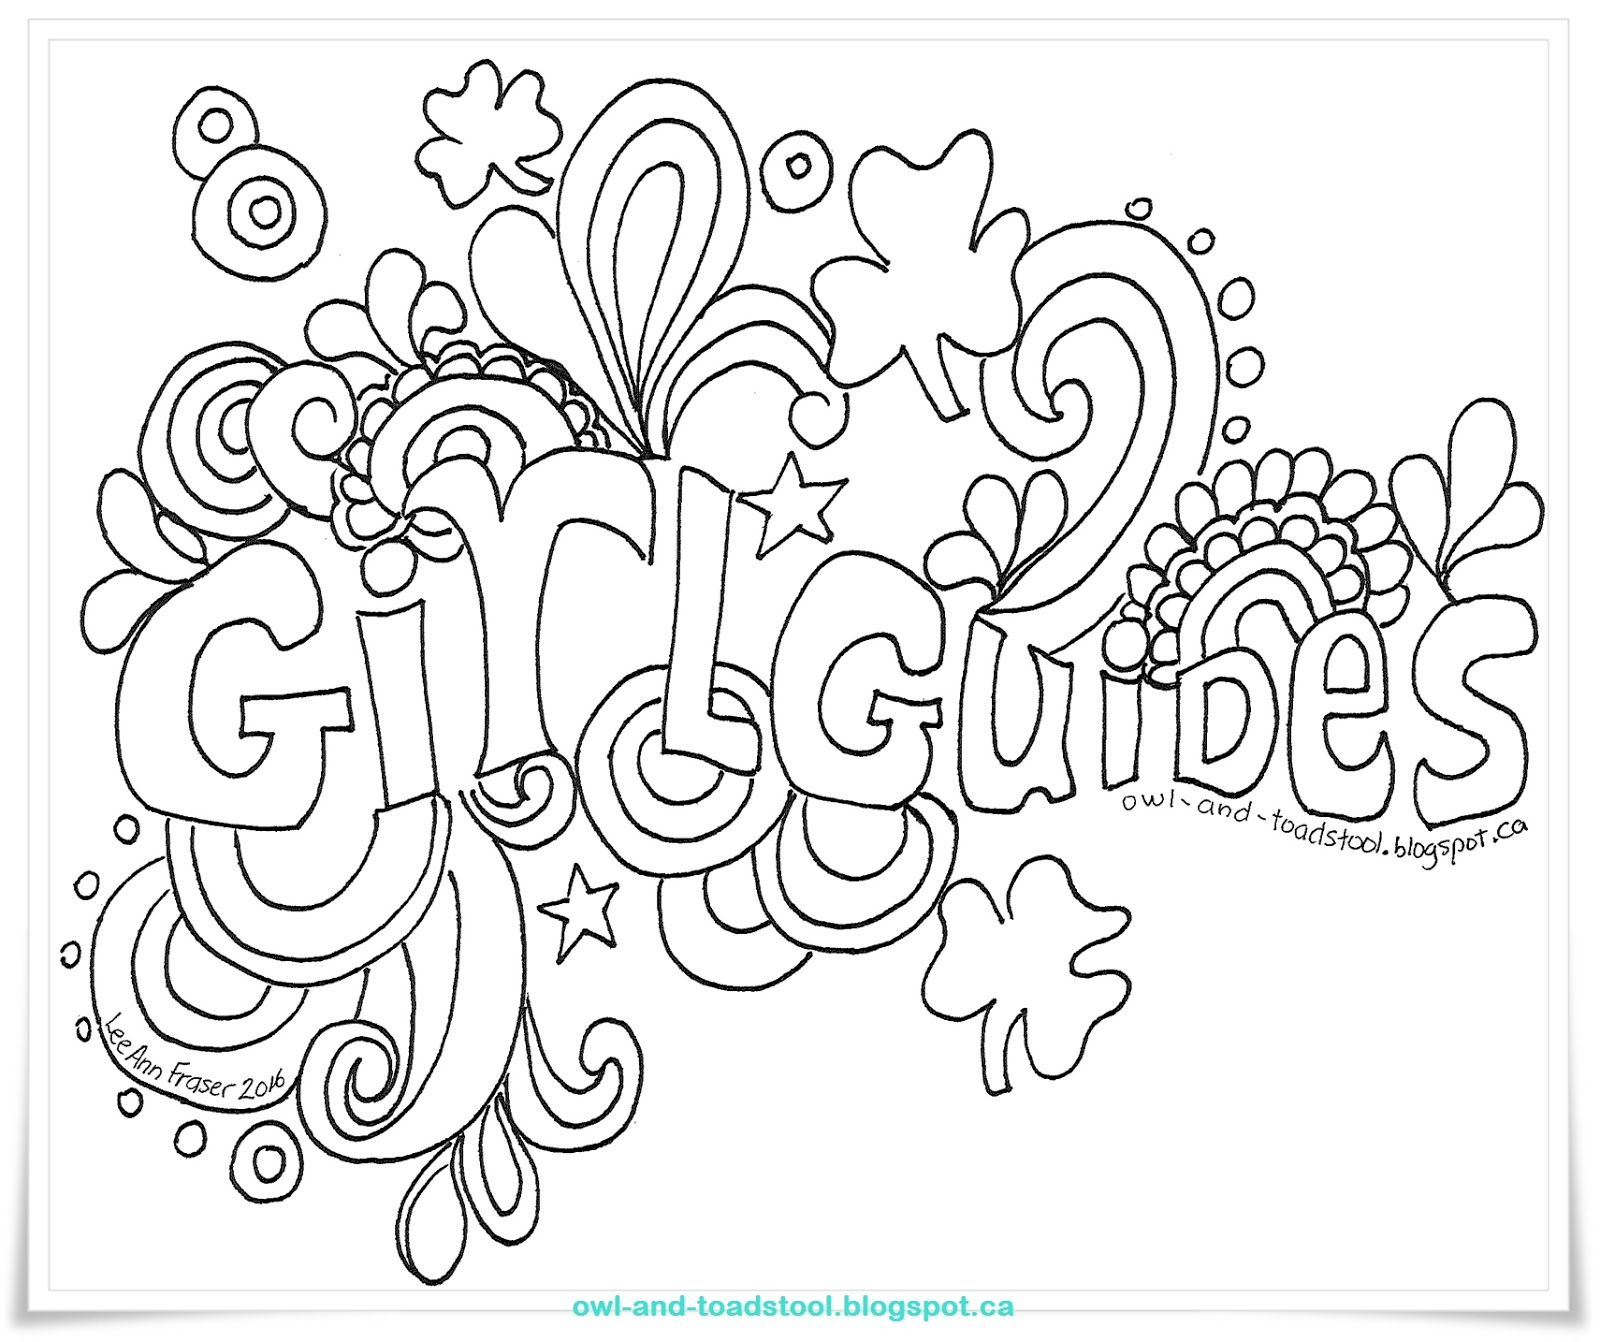 Owl Amp Toadstool Doodle Girl Guides